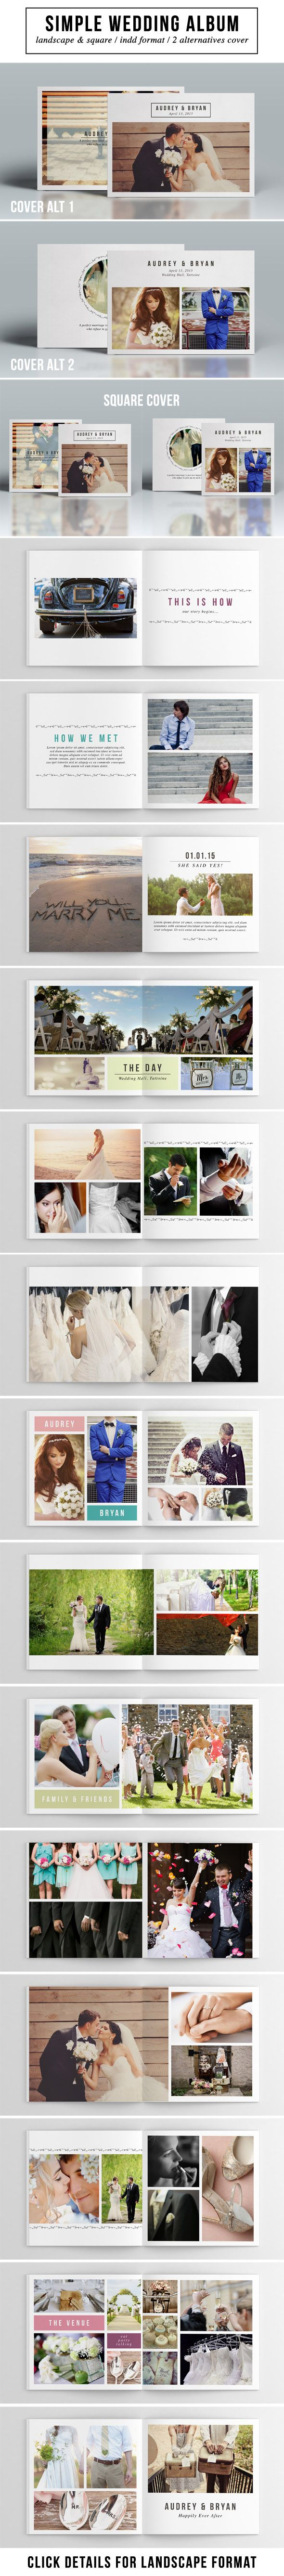 Make your beautiful wedding day into a photo album with simple & elegant design. It's easy editable, all you need to do is just drag your image to the template, and/or add some text. it has 32 pages with different layout. If you like it and find it useful click on the link provided. :)